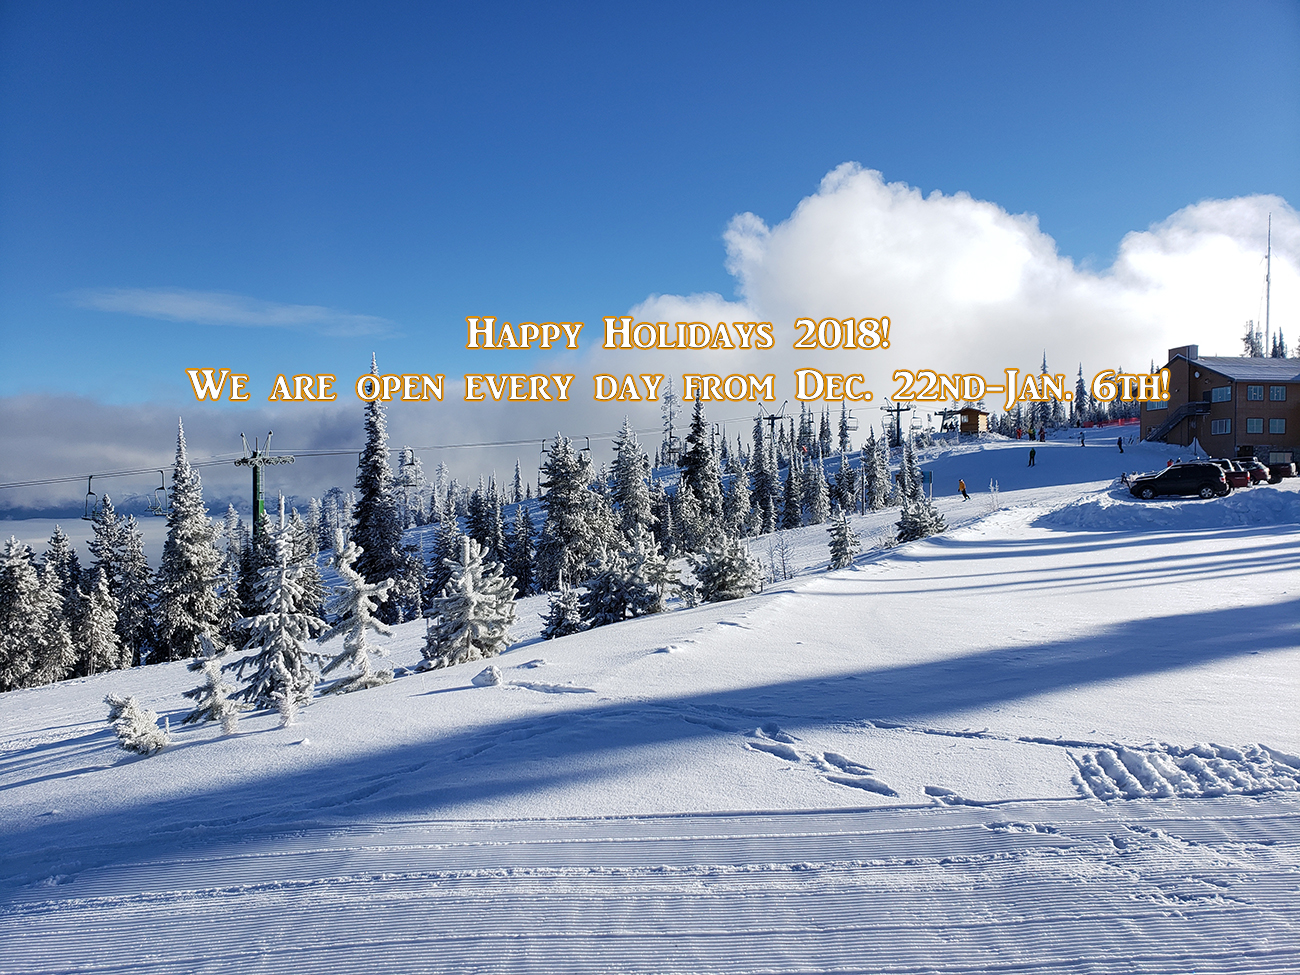 Happy Holidays! We are open every day Dec 22nd-Jan 6th!